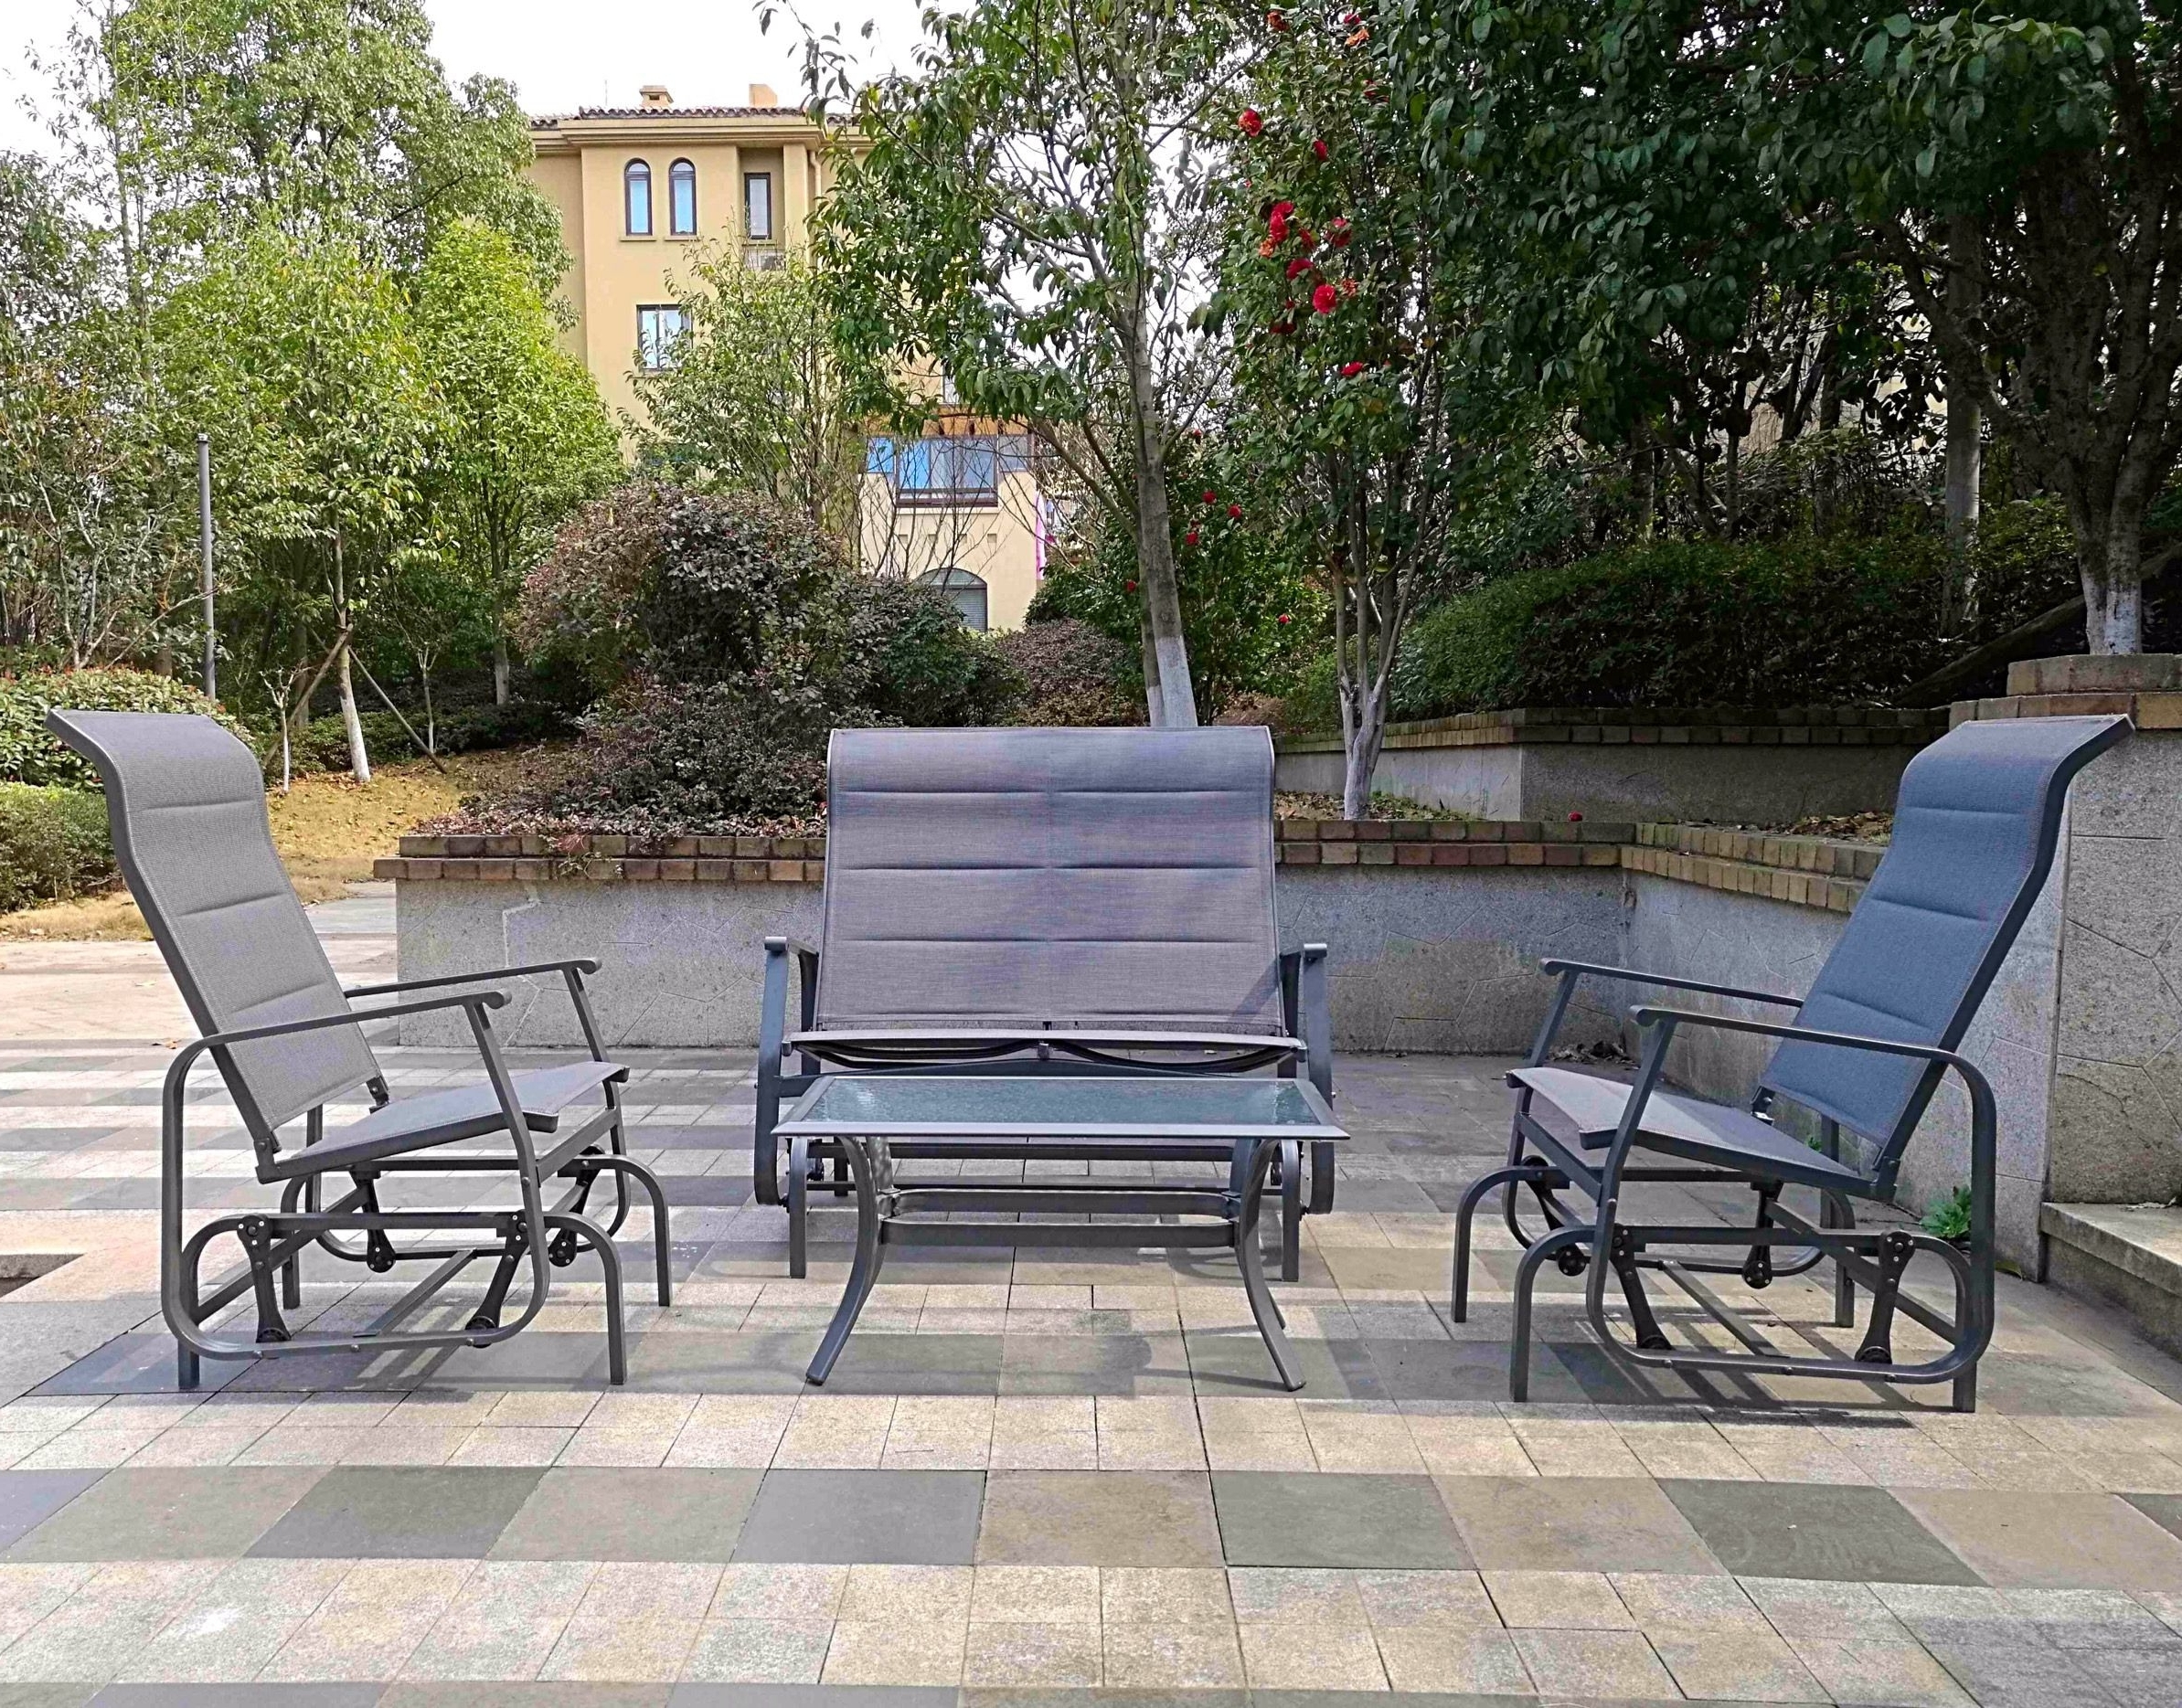 Patio Conversation Sets With Glider Pertaining To Current Conversation Sets Patio – Lovely 4Pc Outdoor Glider Conversation (View 10 of 15)